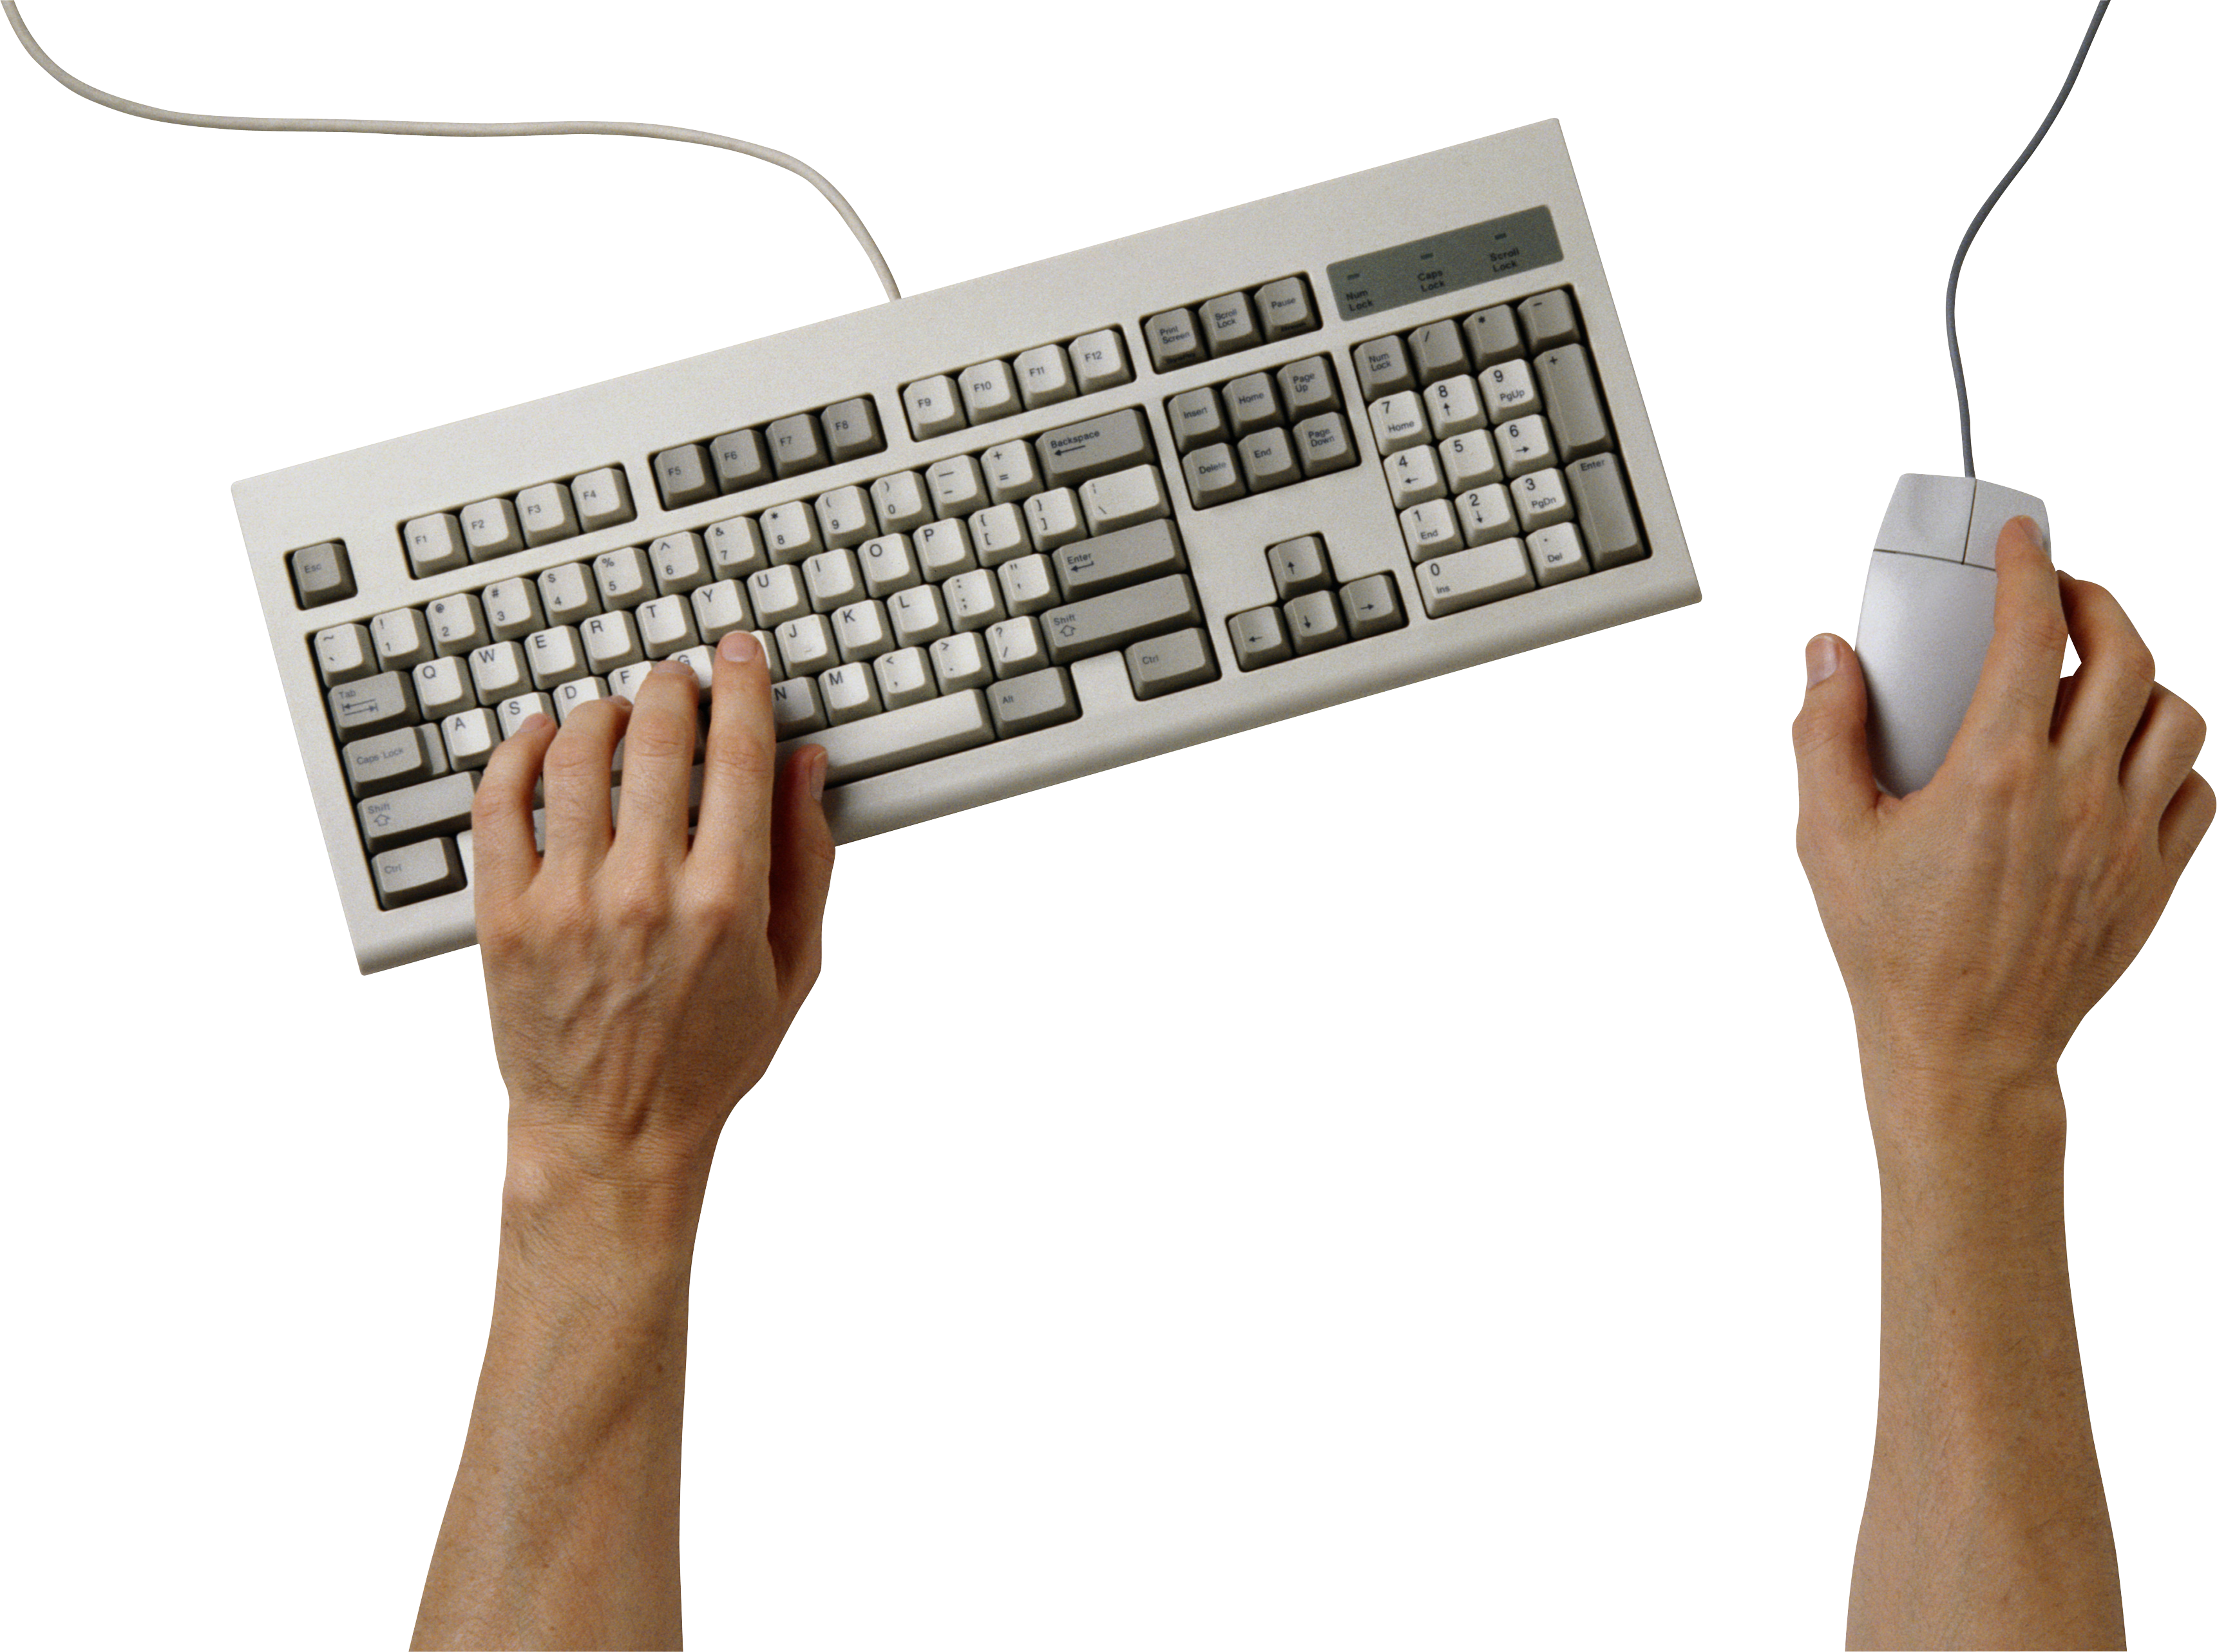 Hands on png image. Keyboard clipart word processing